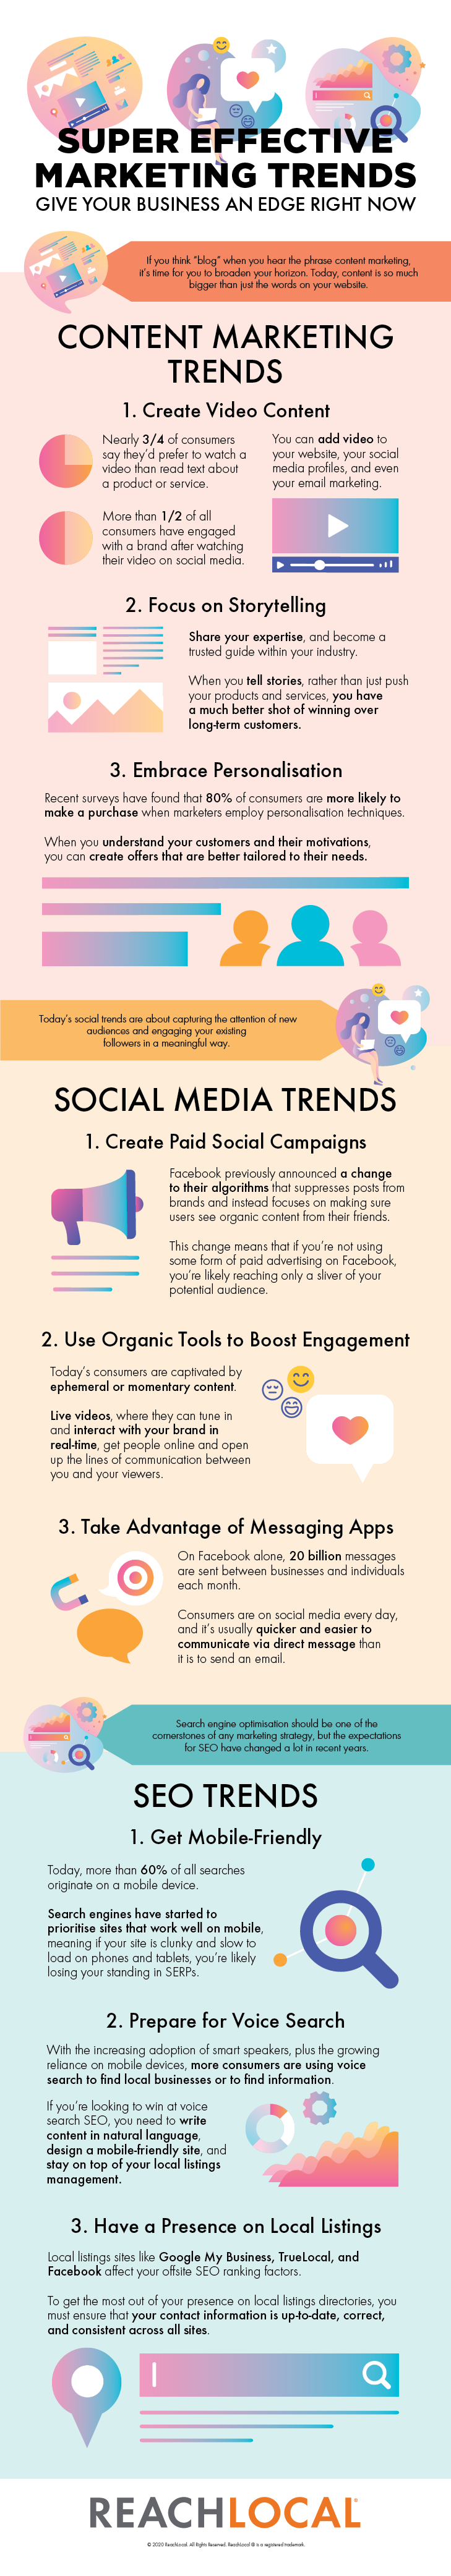 Marketing Trends: Give Your Business an Edge Right Now